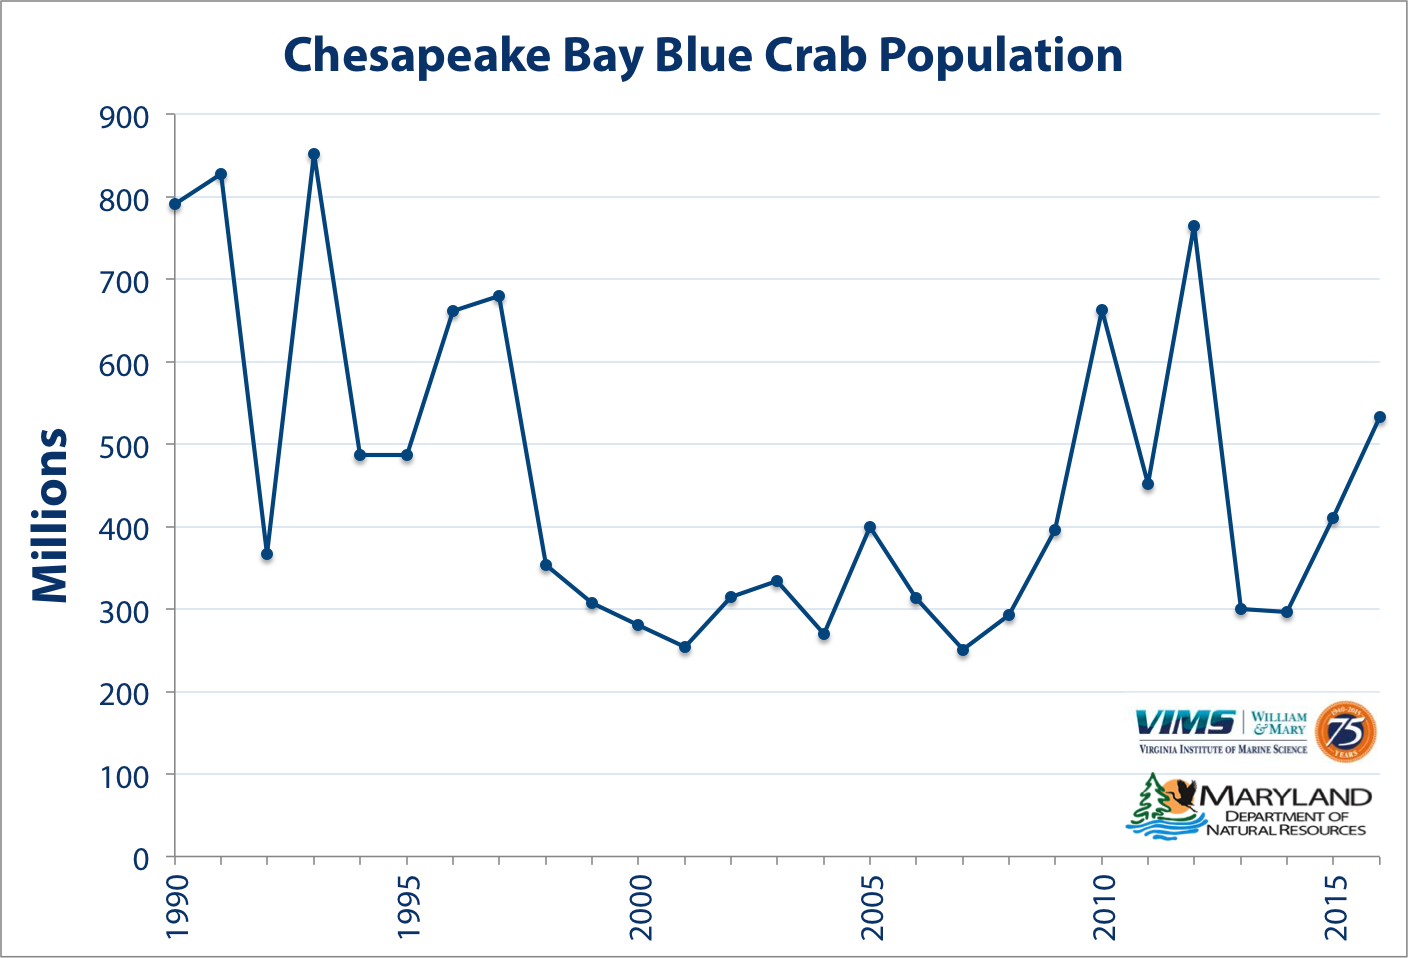 Total number of blue crabs in Chesapeake Bay in millions (all ages and both sexes). Click for larger version.